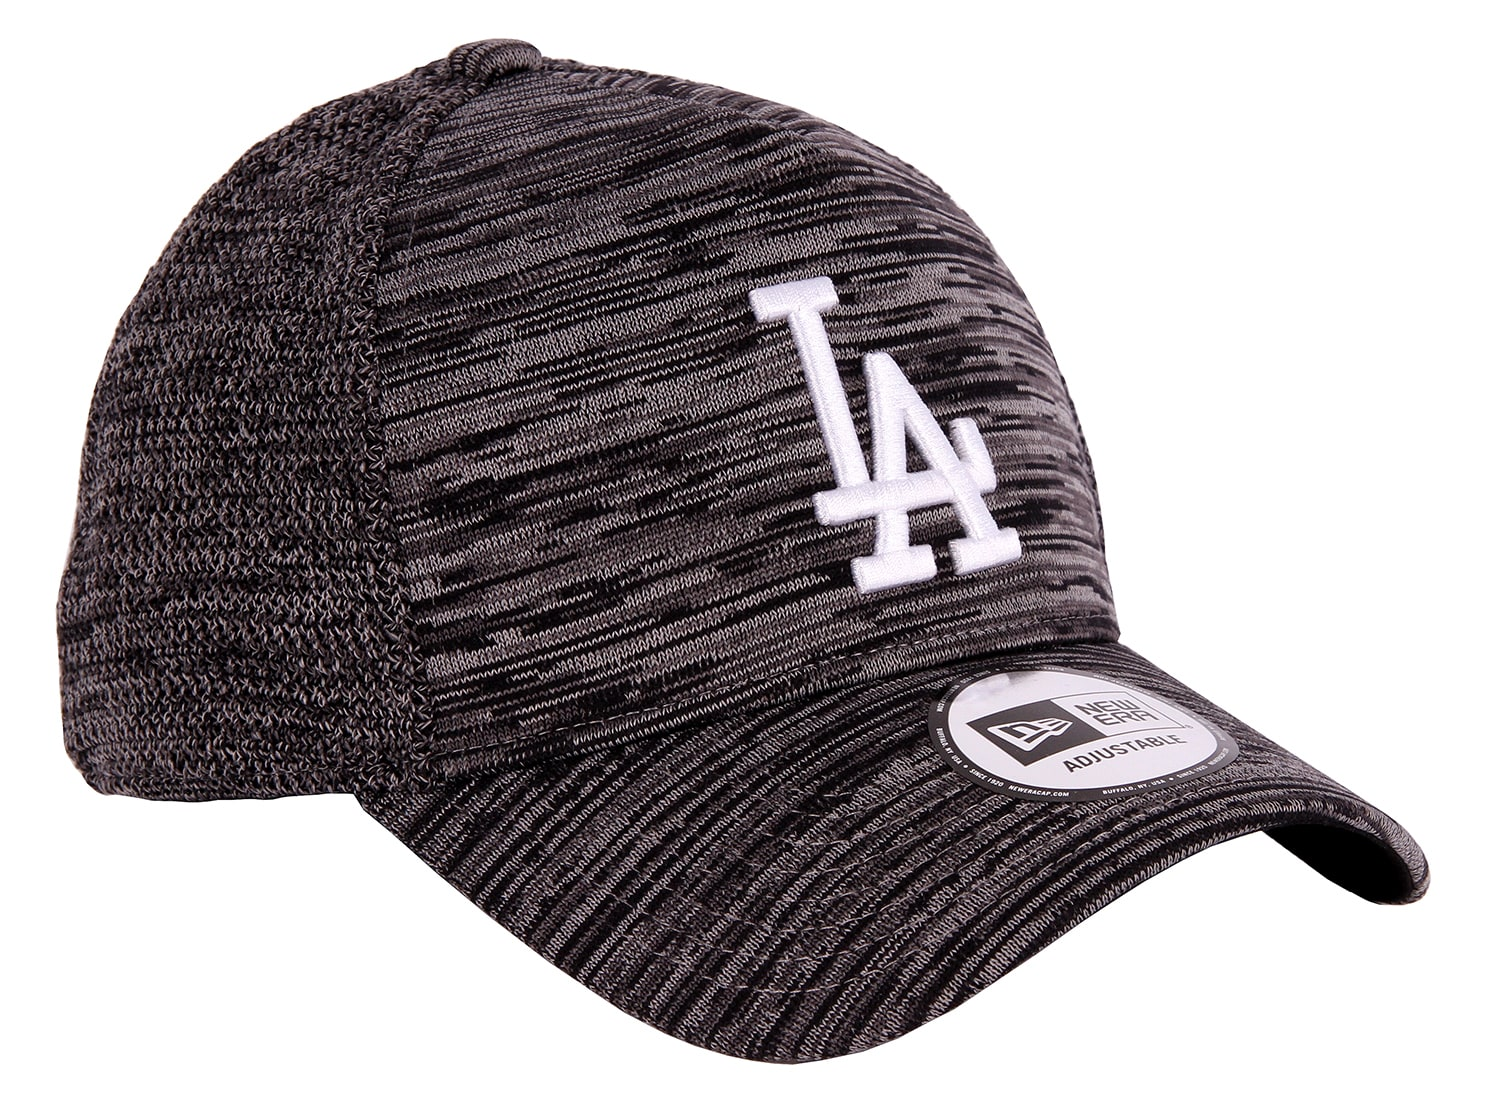 Details about New Era Los Angeles Dodgers MLB Engineered Fit Cap 48b16a34f956